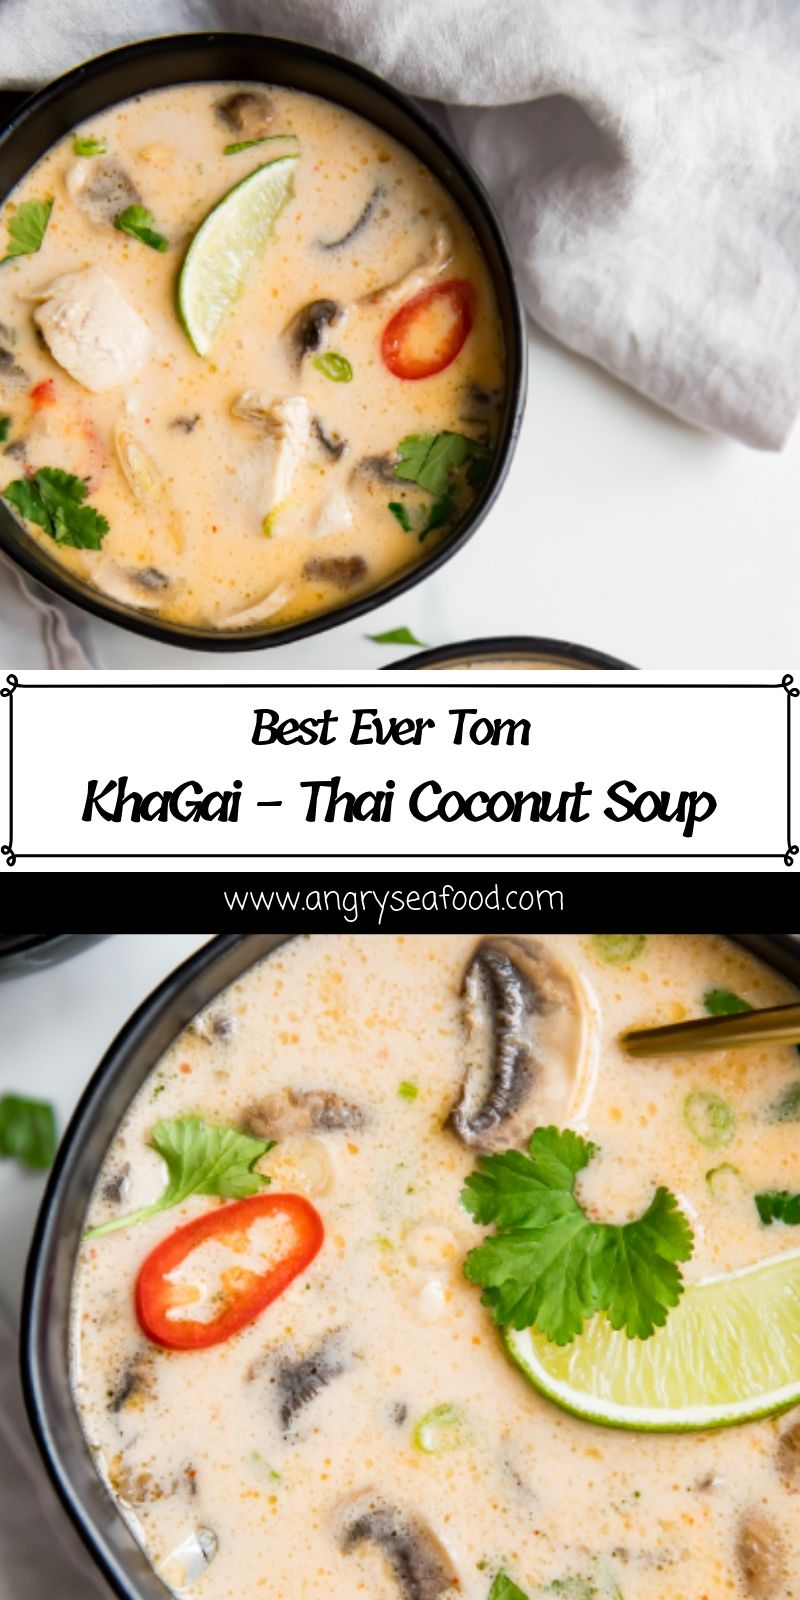 Best Ever Tom Kha Gai - Thai Coconut Soup